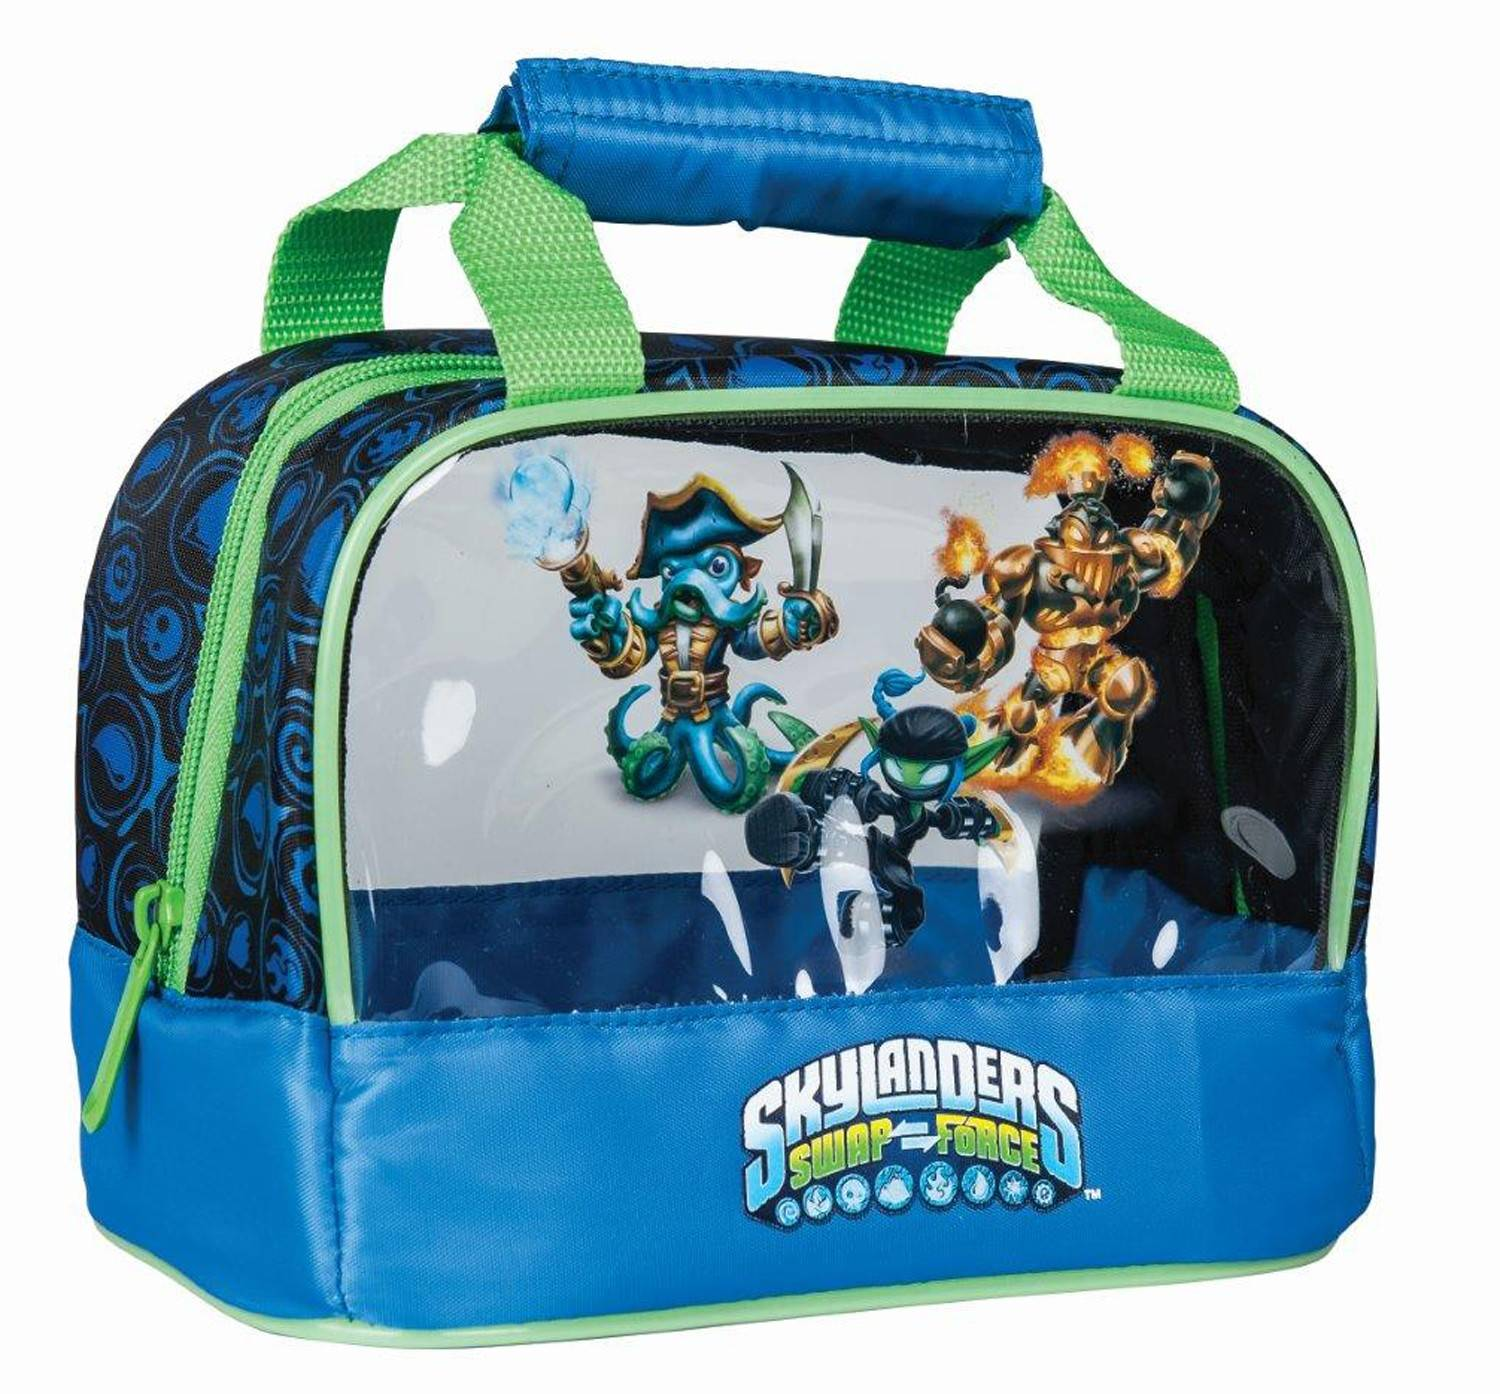 Turtle Beach Skylanders Swap Force Mini kantolaukku